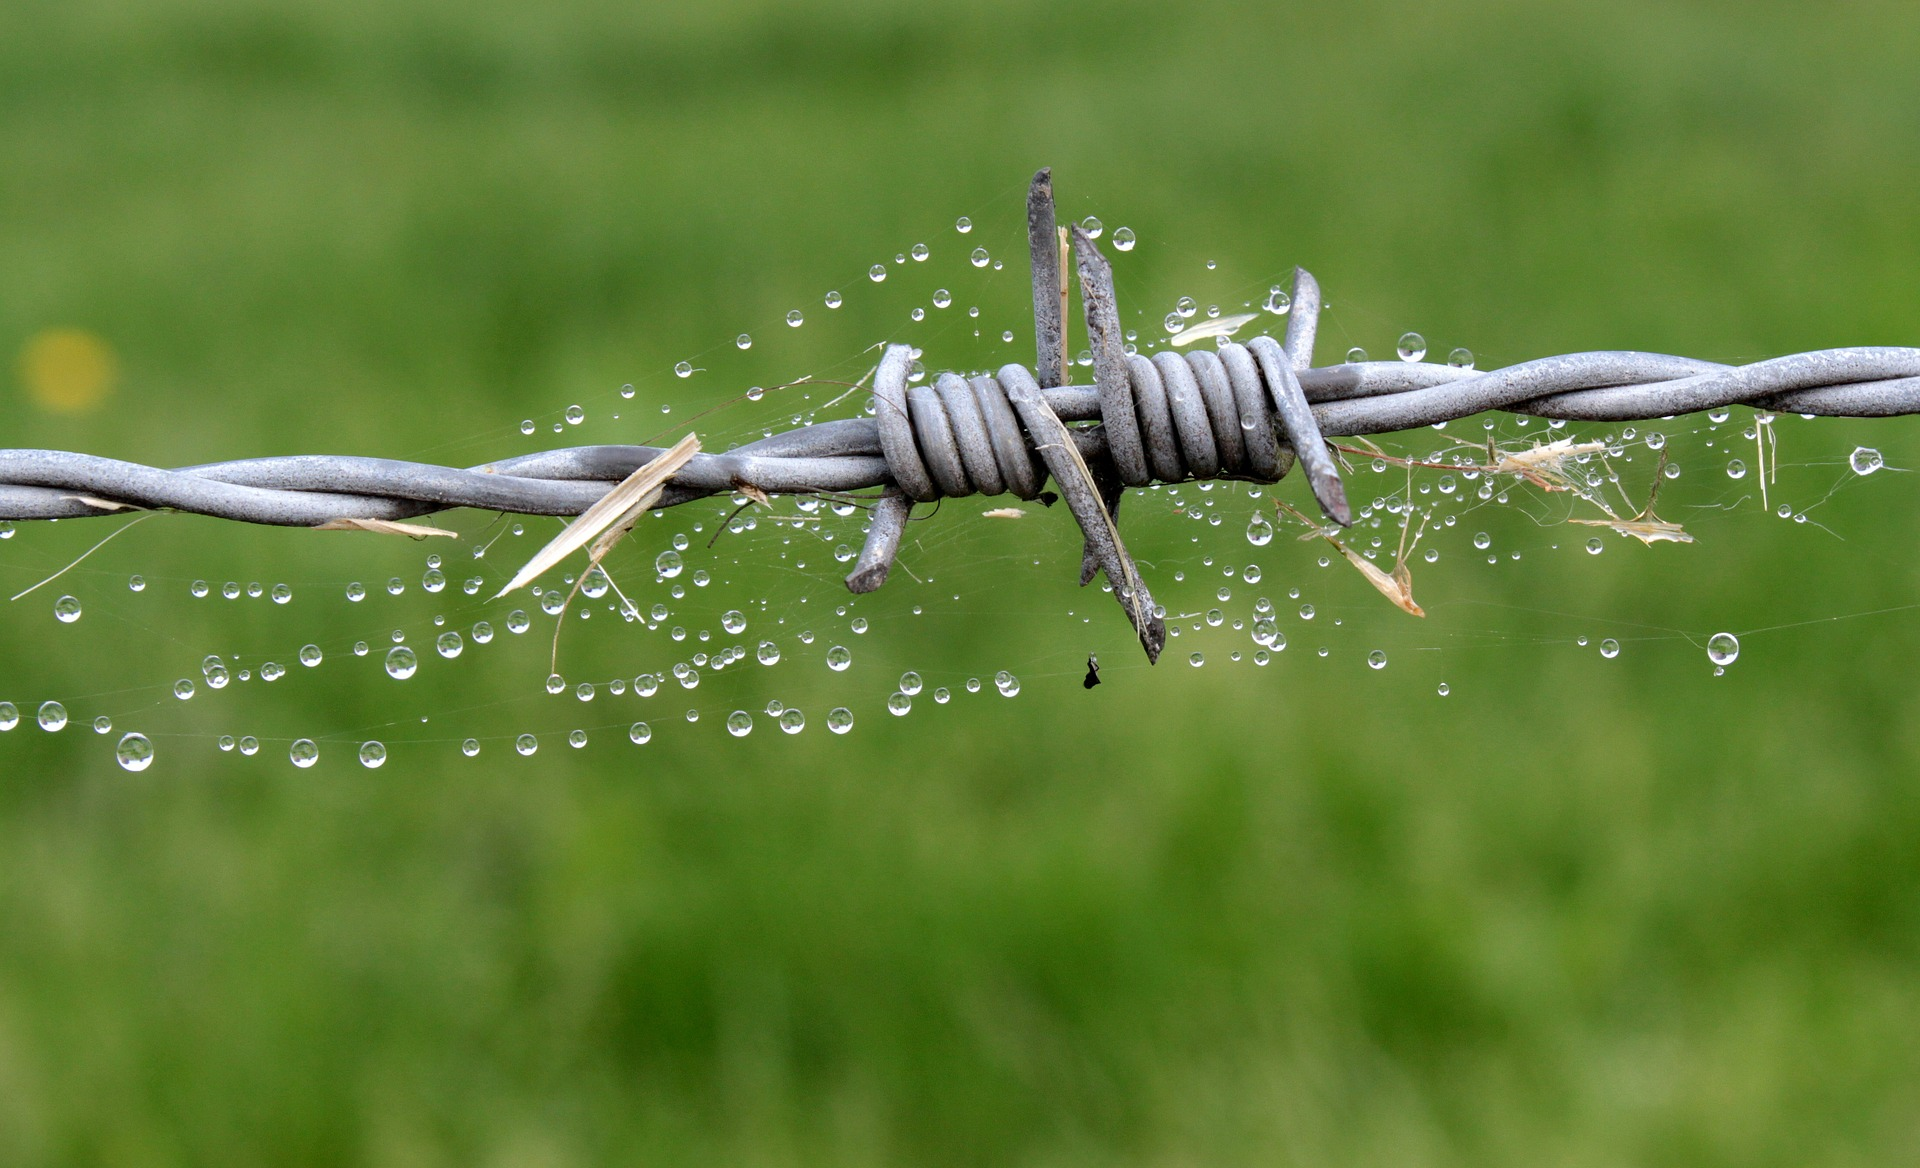 Barb Wire Fence, Object, Spiderweb, Wire, Metallic, HQ Photo